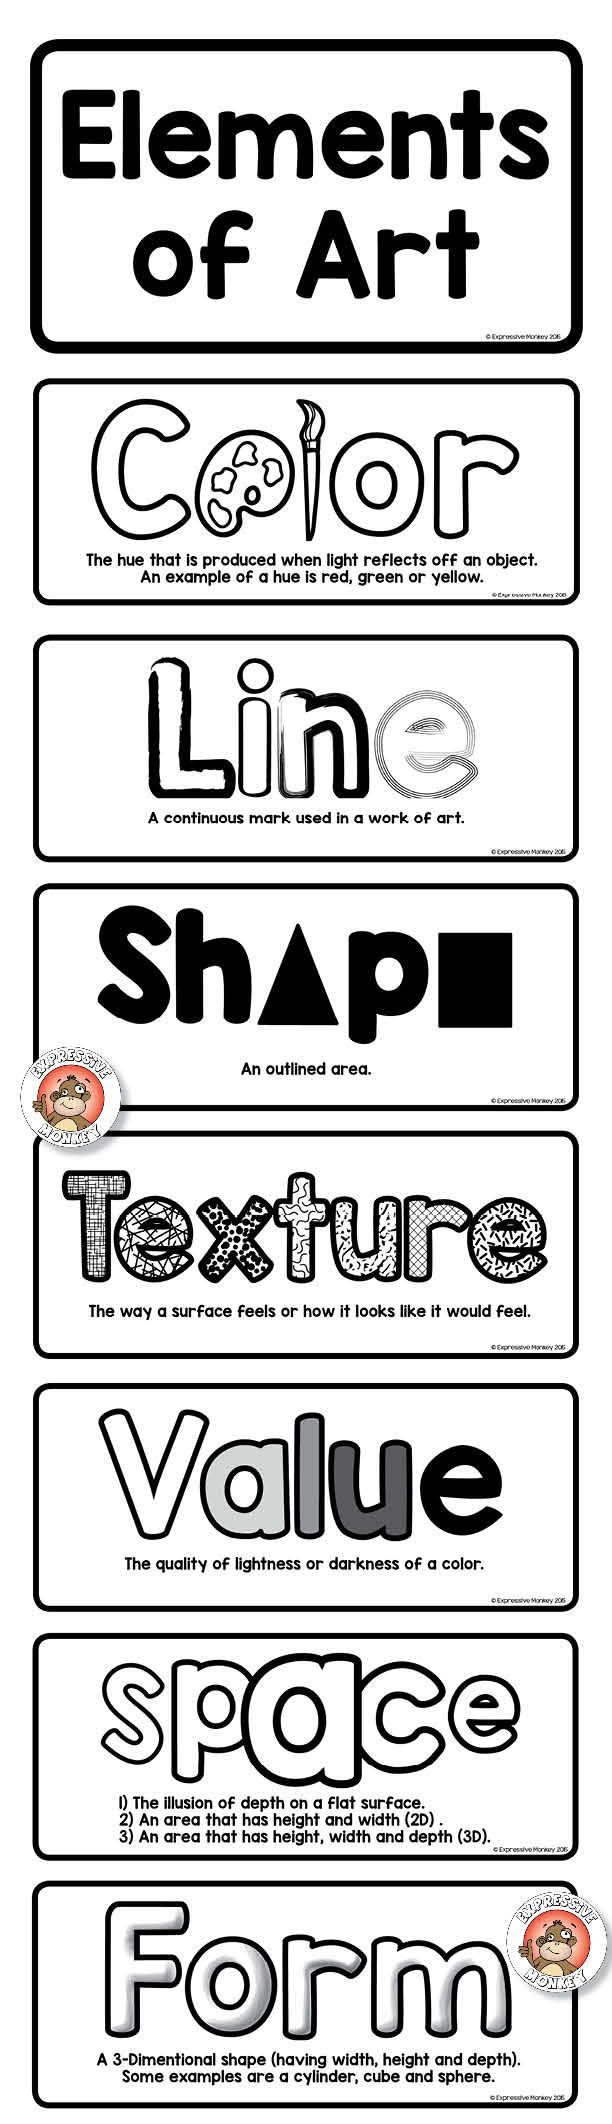 Elements of Art Definition Cards - Printable Sheets -